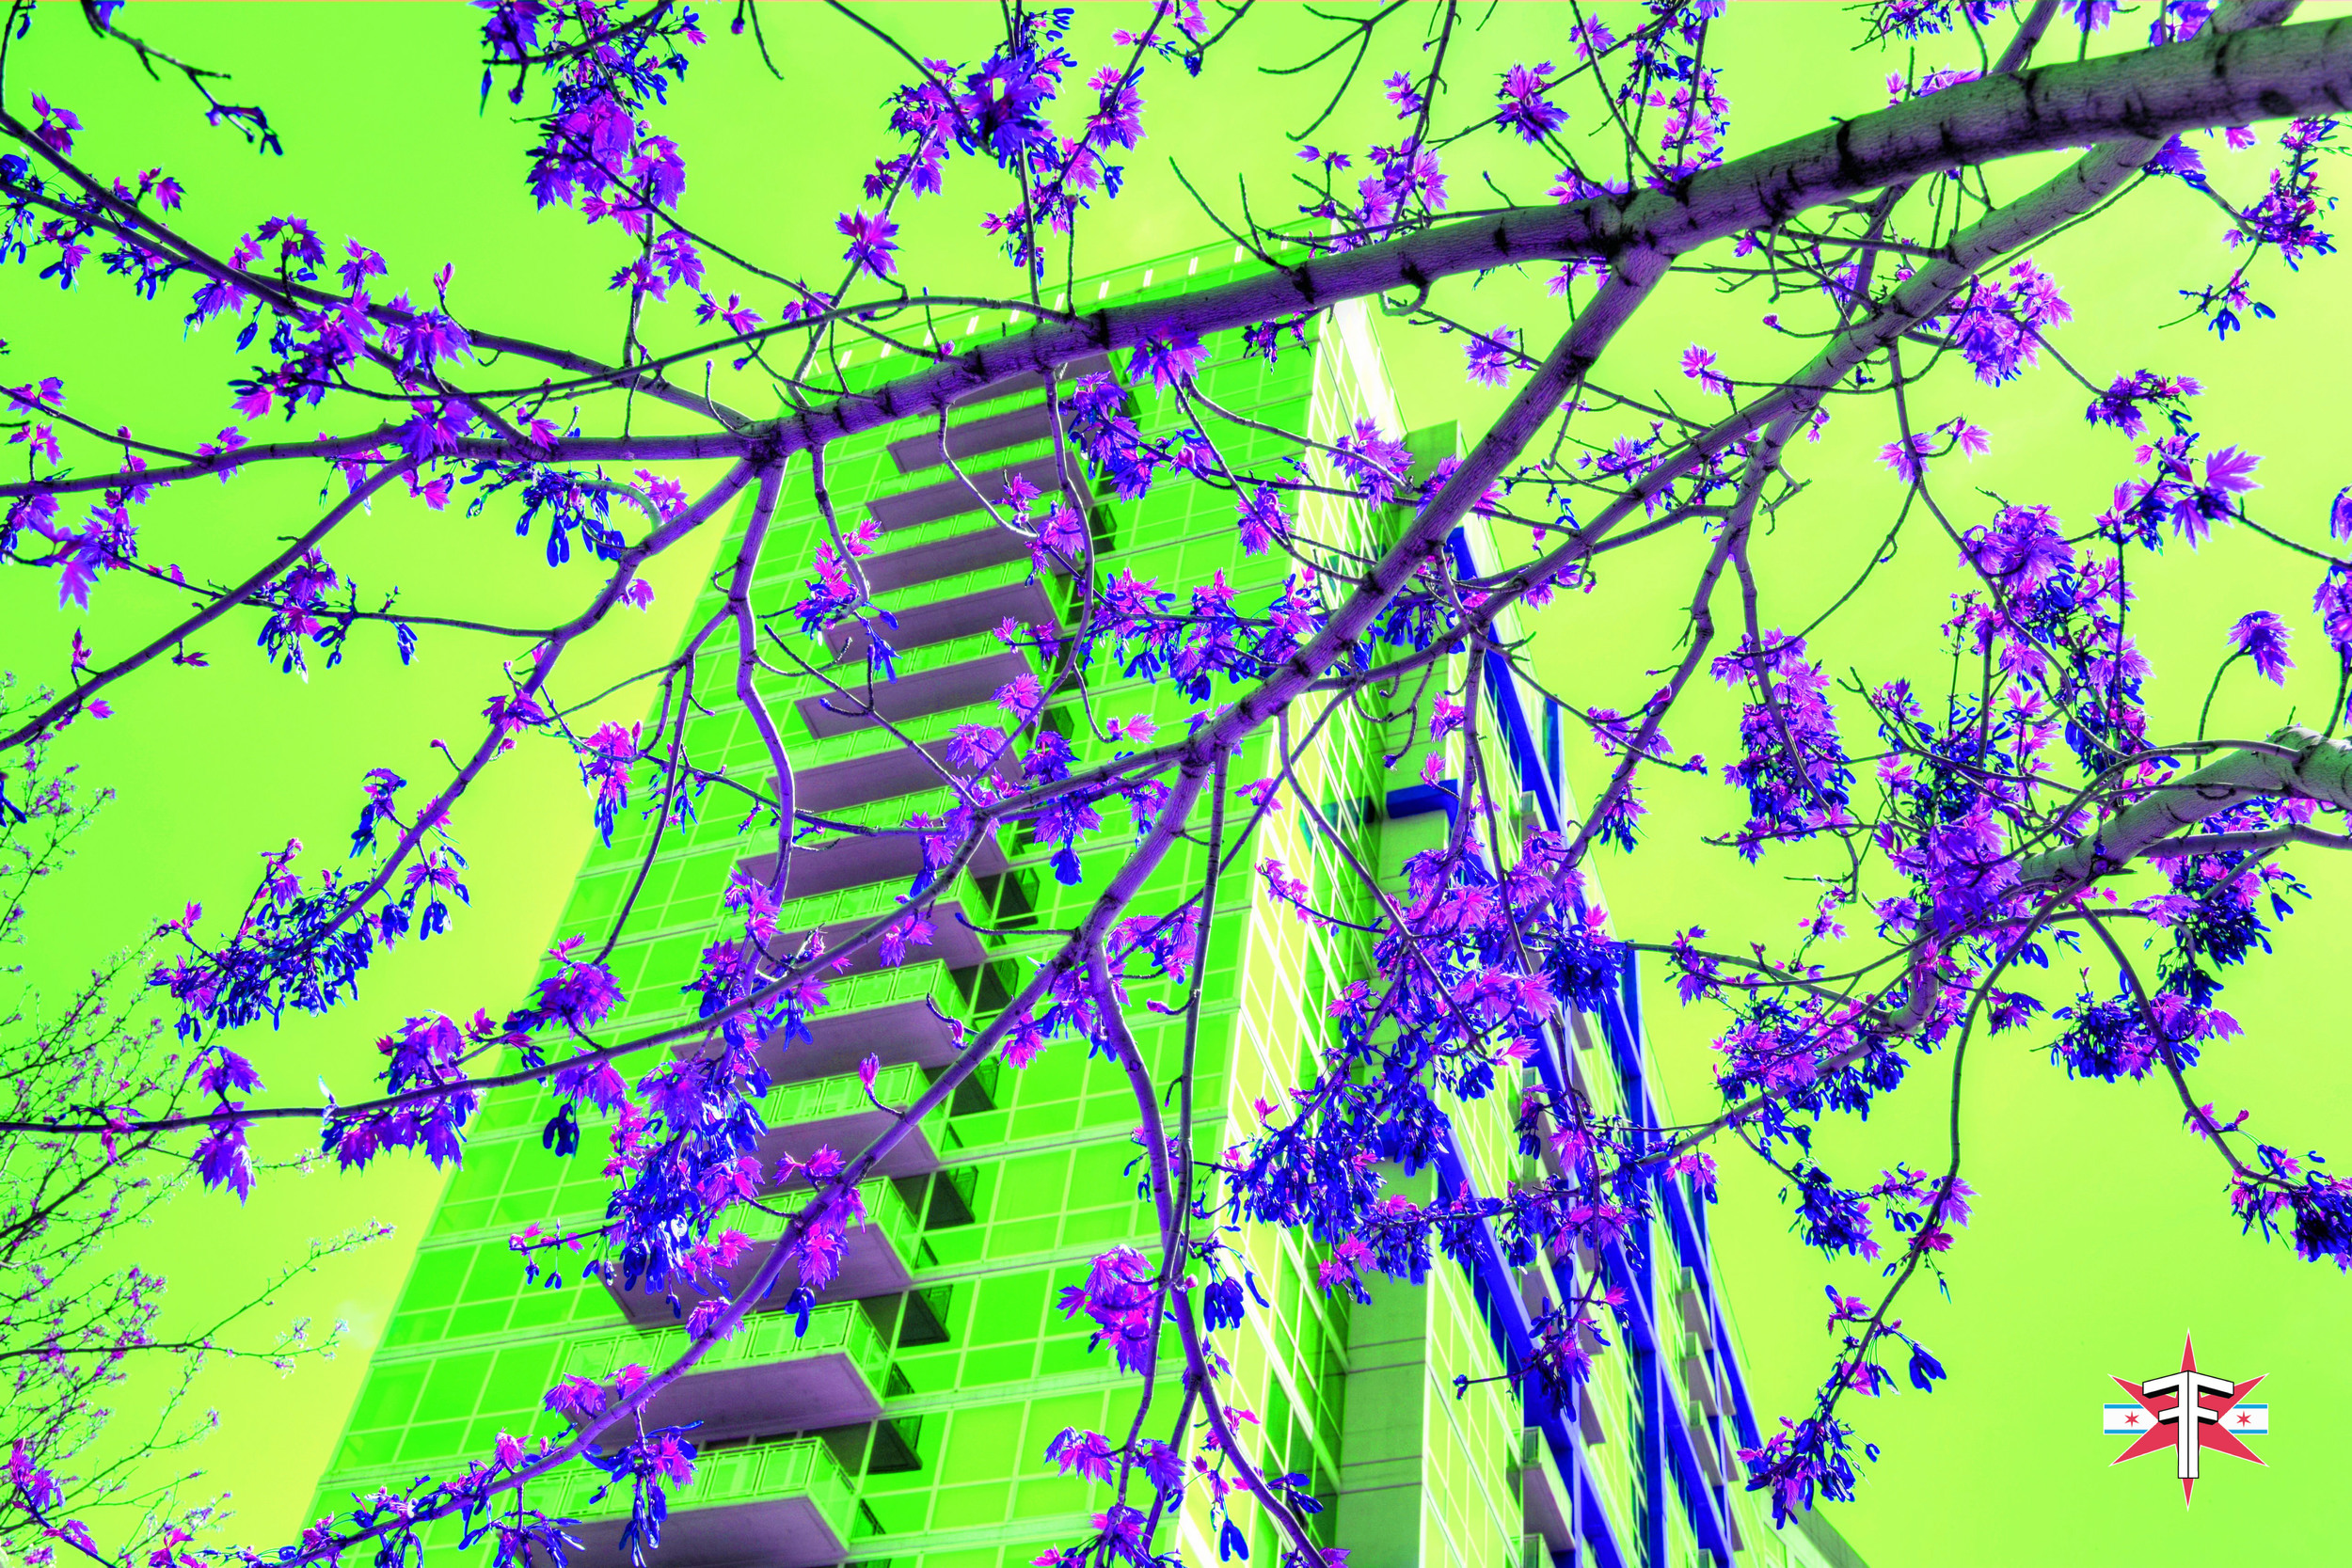 chicago art abstract eric formato photography color travel cityscape architecture saturated citycapes bright vibrant artistic-81.jpg